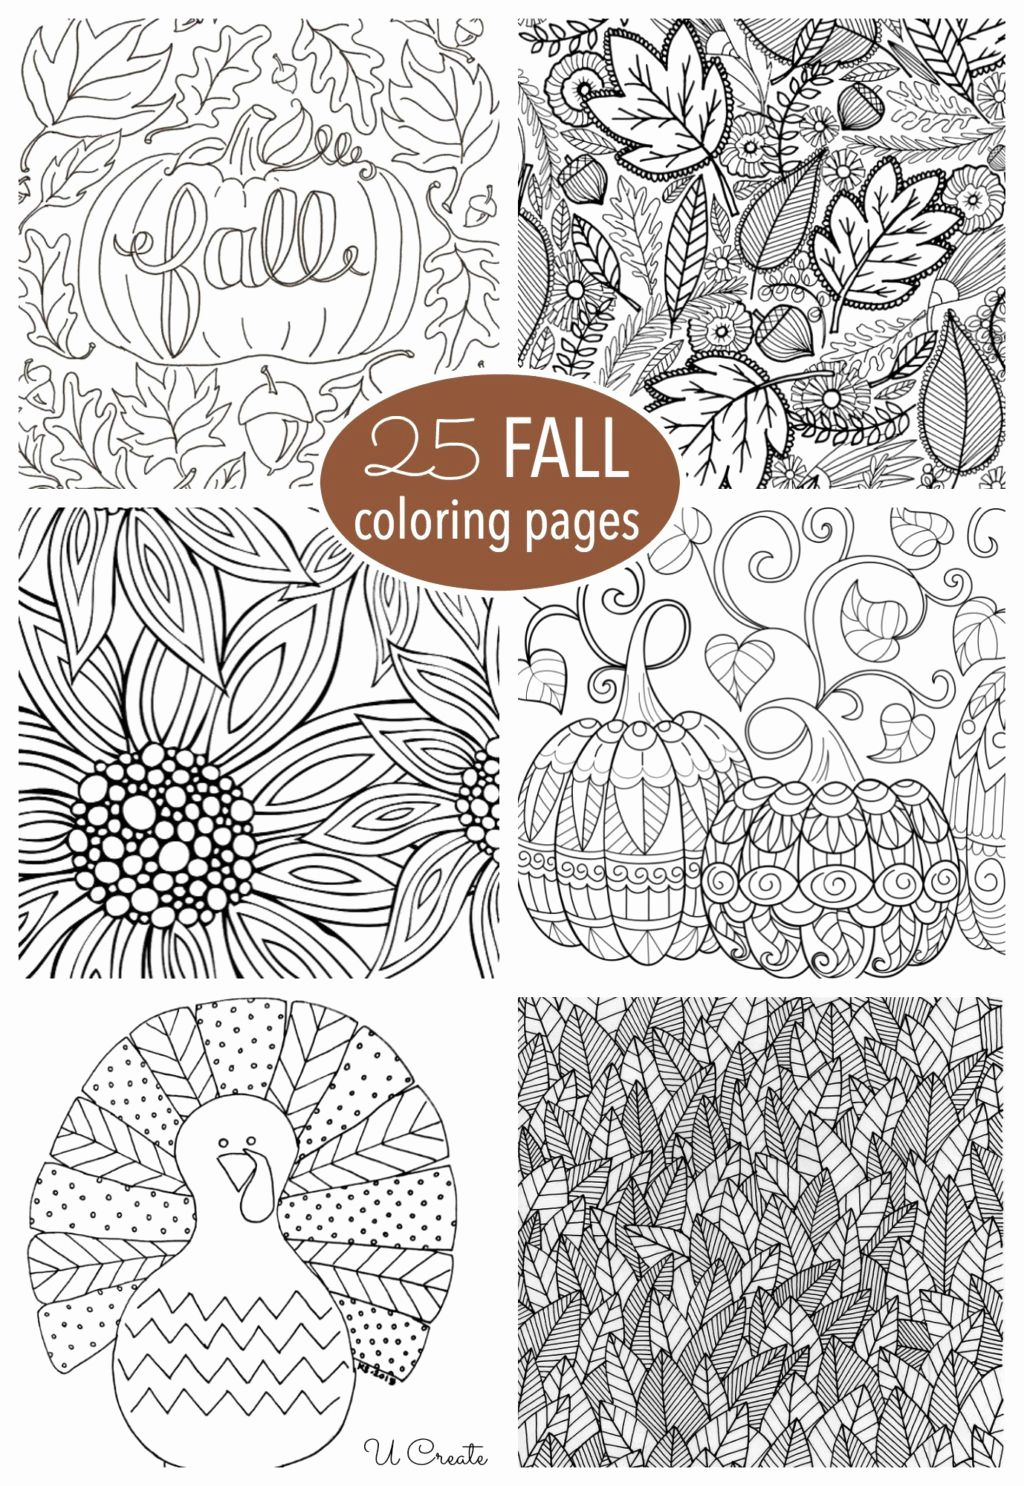 Pin On Fall Coloring Pages For Kids [ 1486 x 1024 Pixel ]